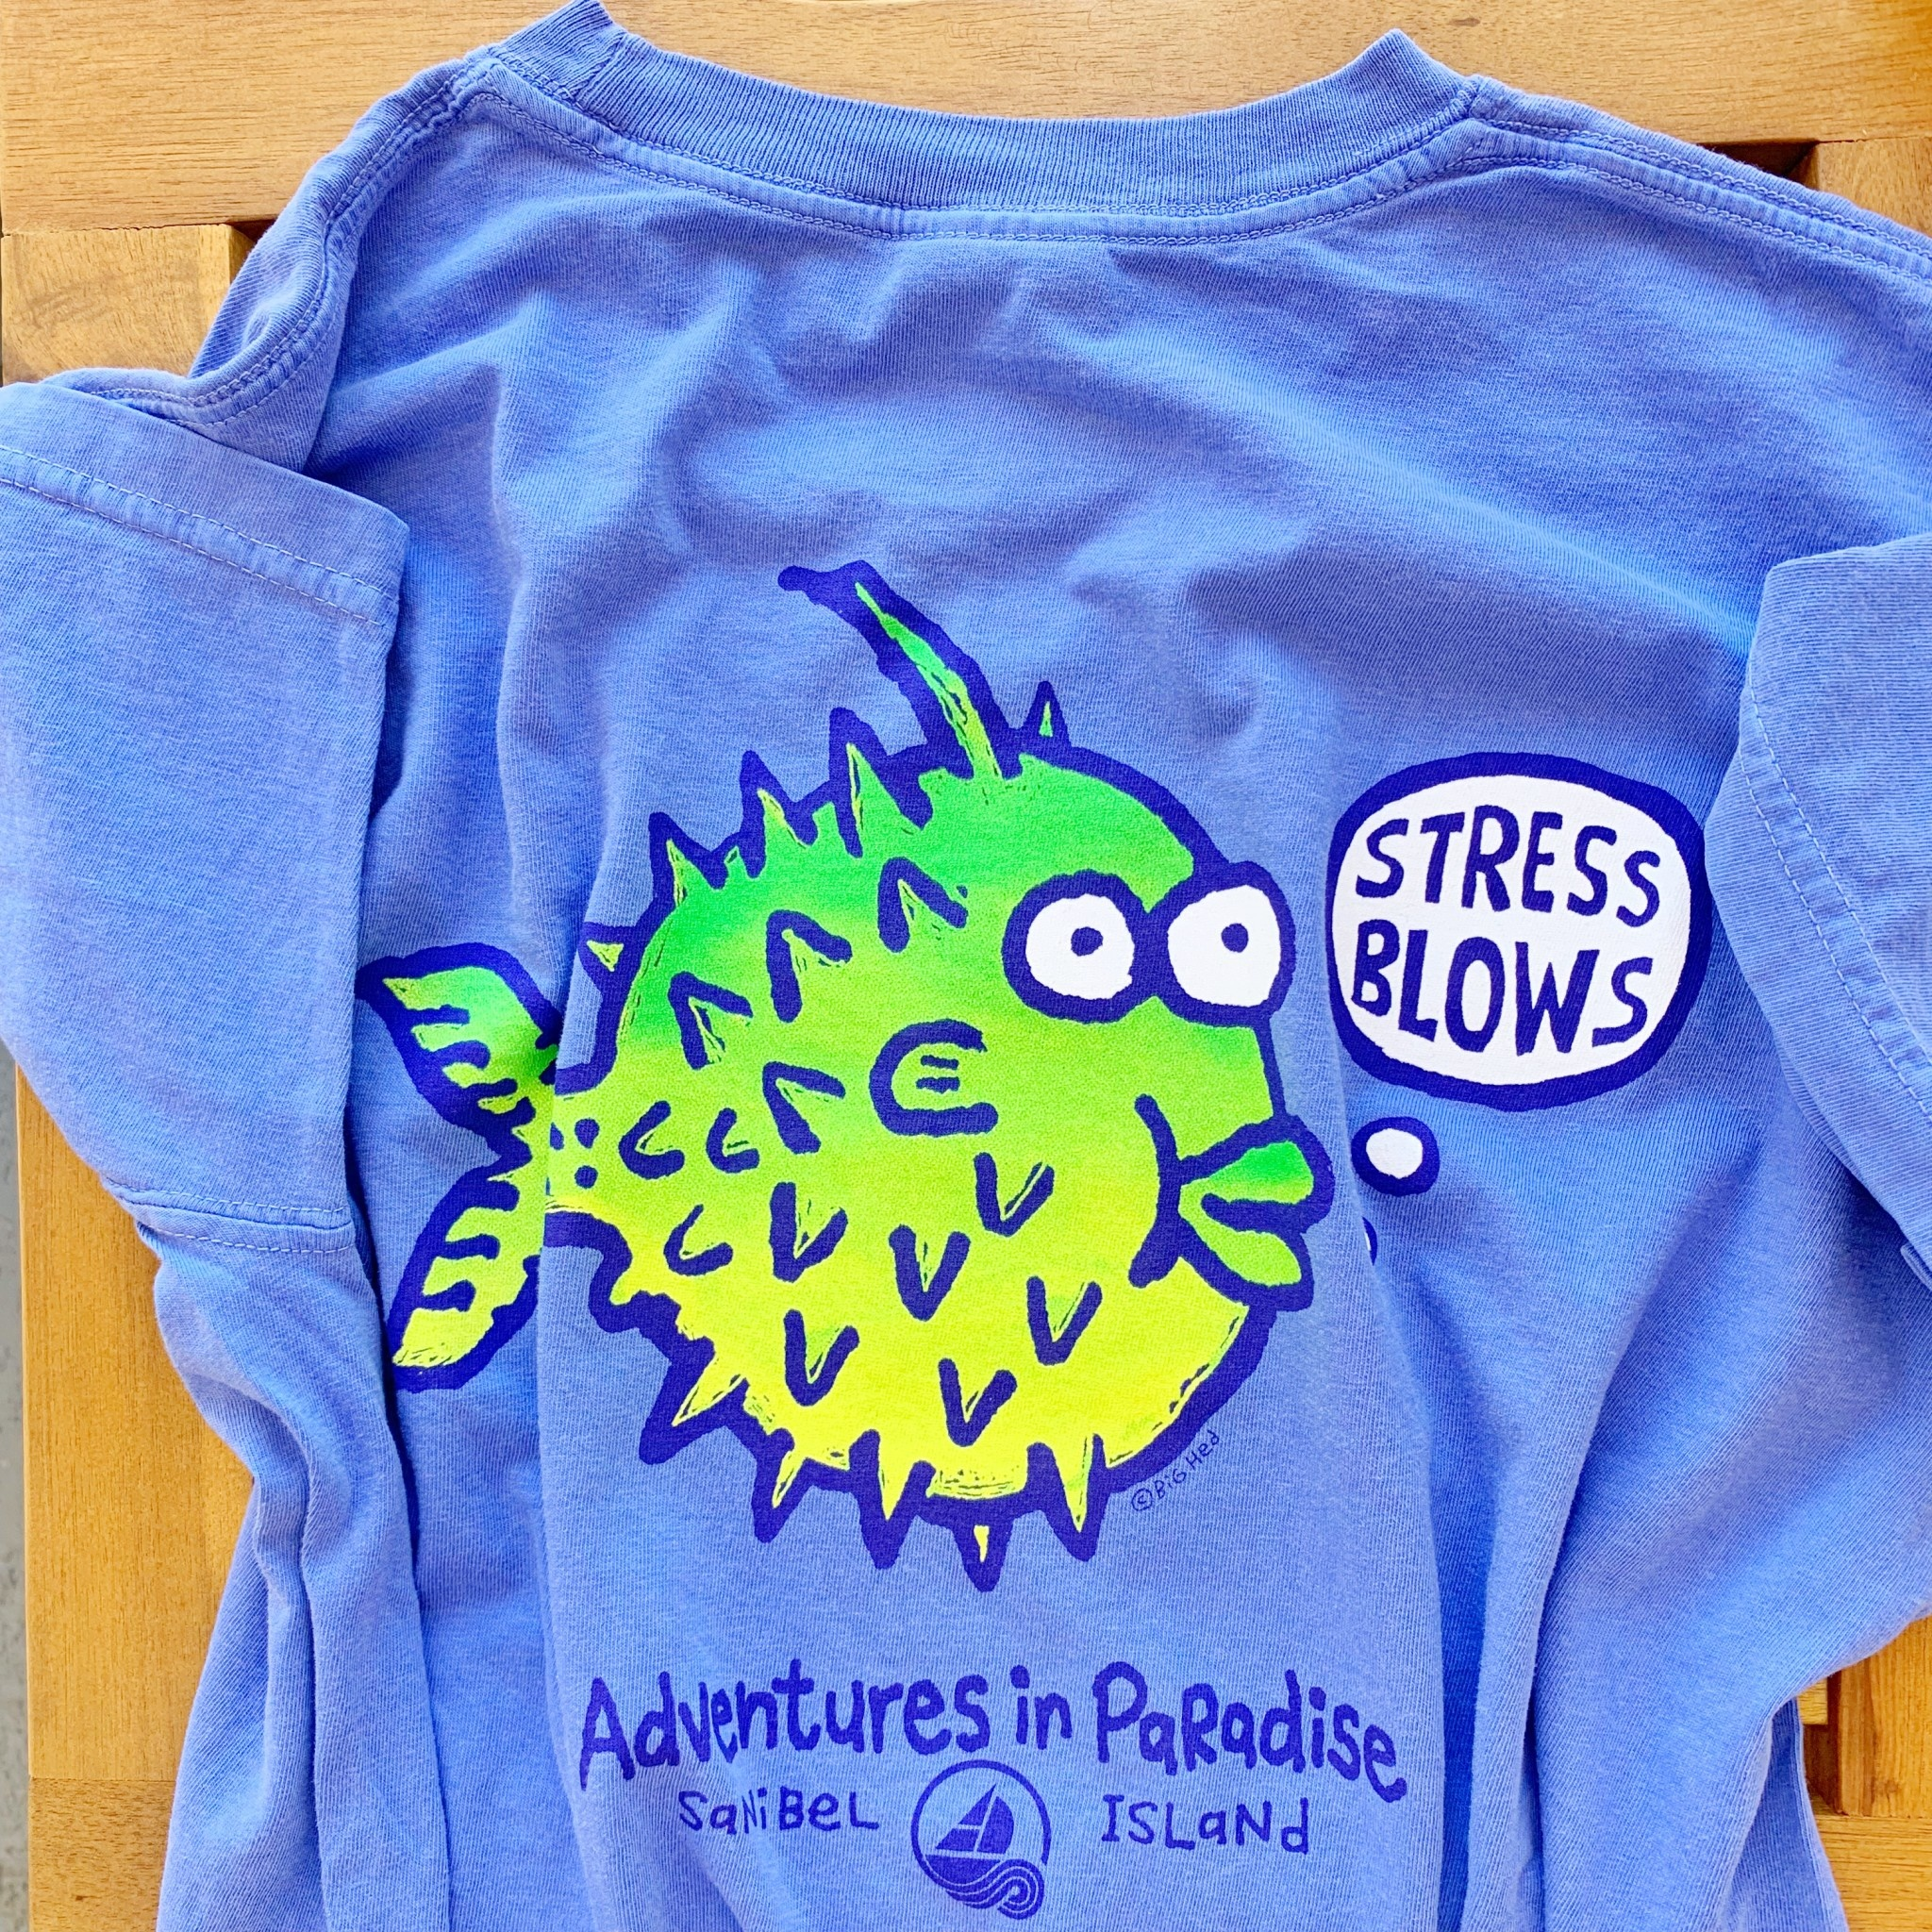 BIG HED DESIGNS Sanibel Island Tshirt Stress Blows - Blue